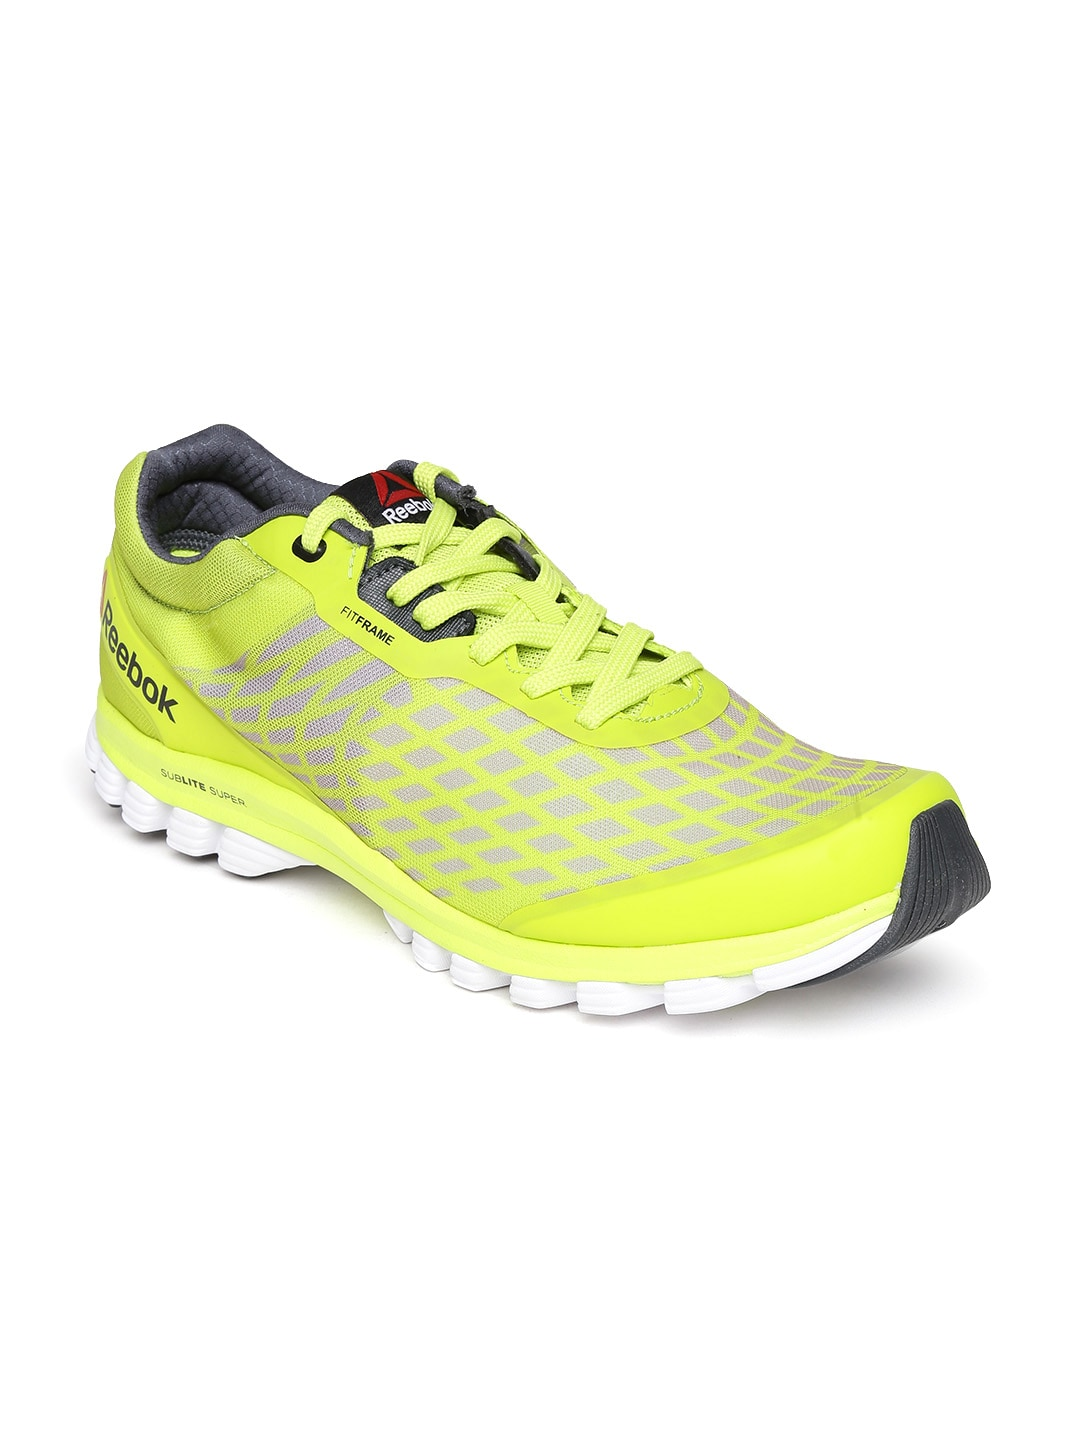 b8812aebf7b706 Reebok v66151 Men Lime Green Sublite Super Duo Running Shoes- Price in India